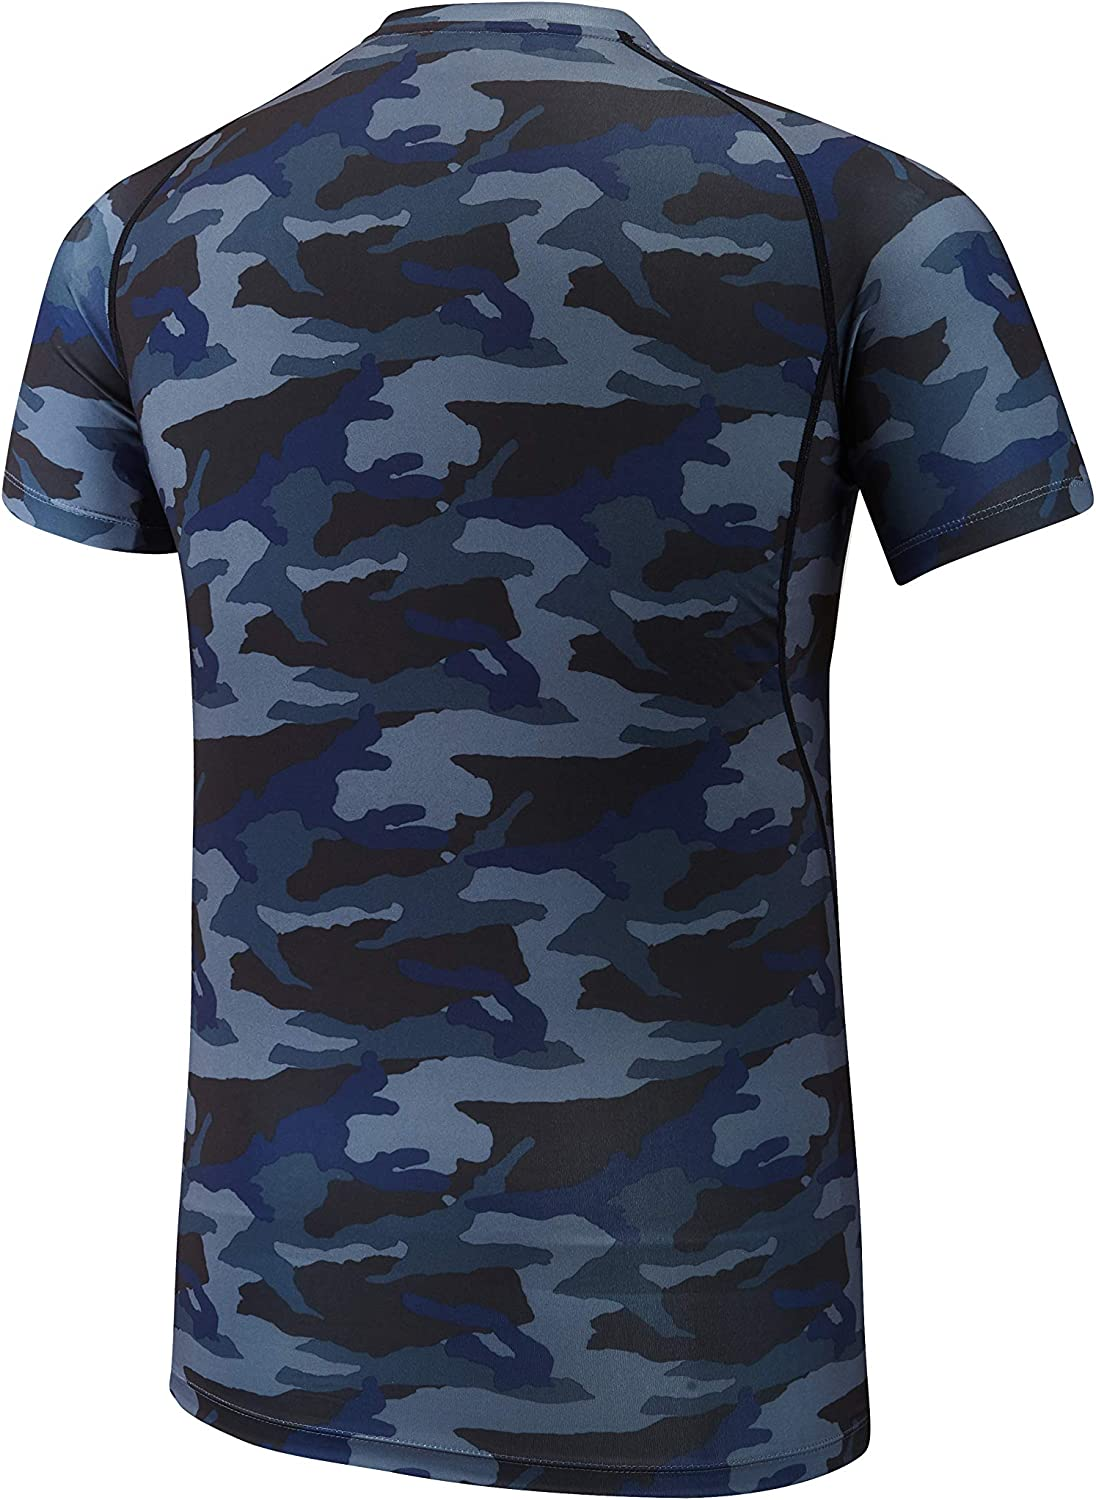 Men/'s Compression Sports Sets Athletic Apparel Under Base Layer Dri-fit Outfits